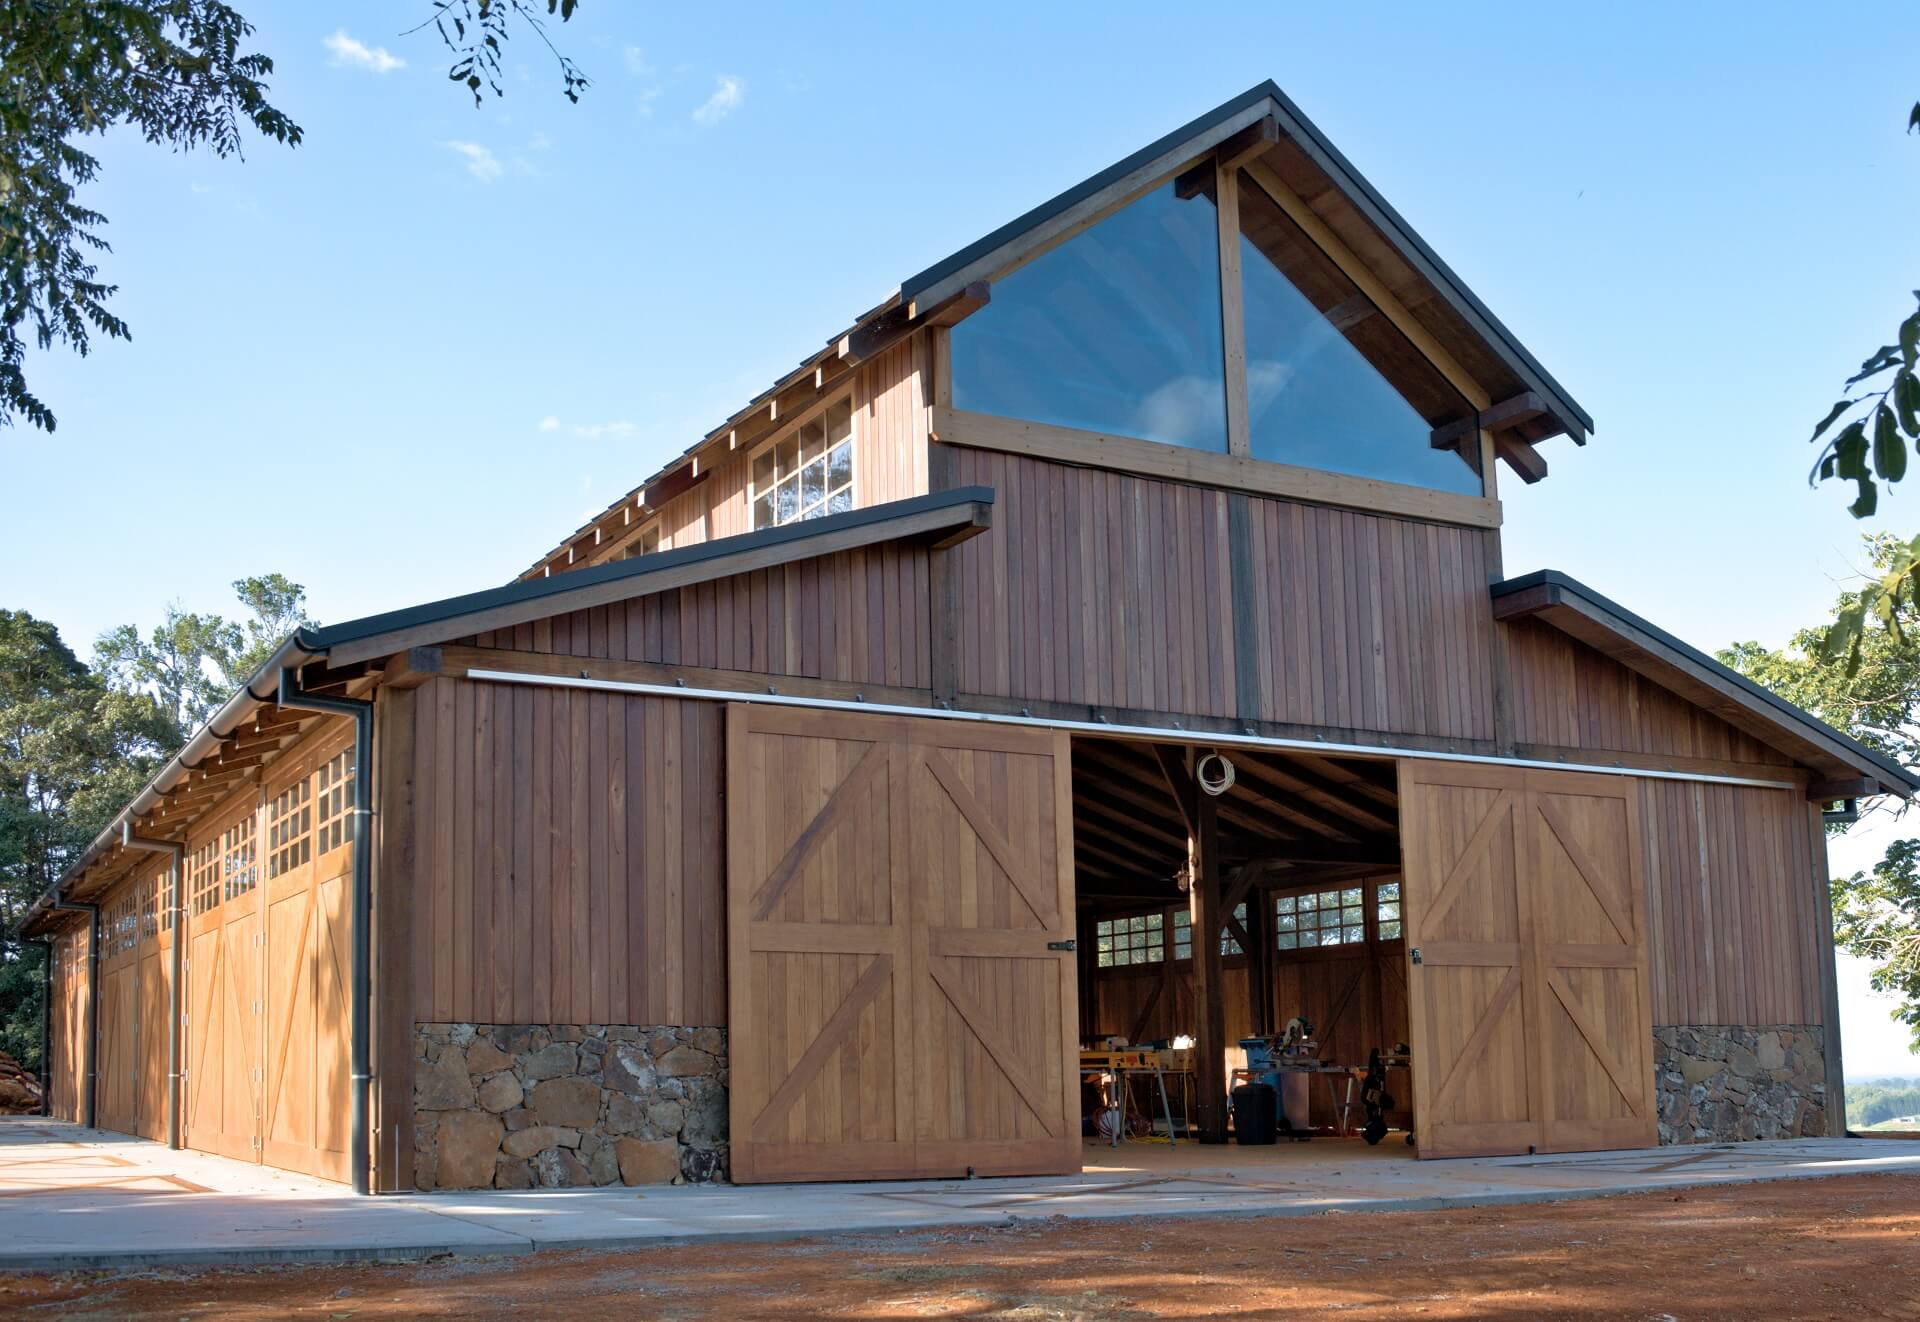 Exterior shot of the almost completed authentic timber barn, with only interior fitout remaining.